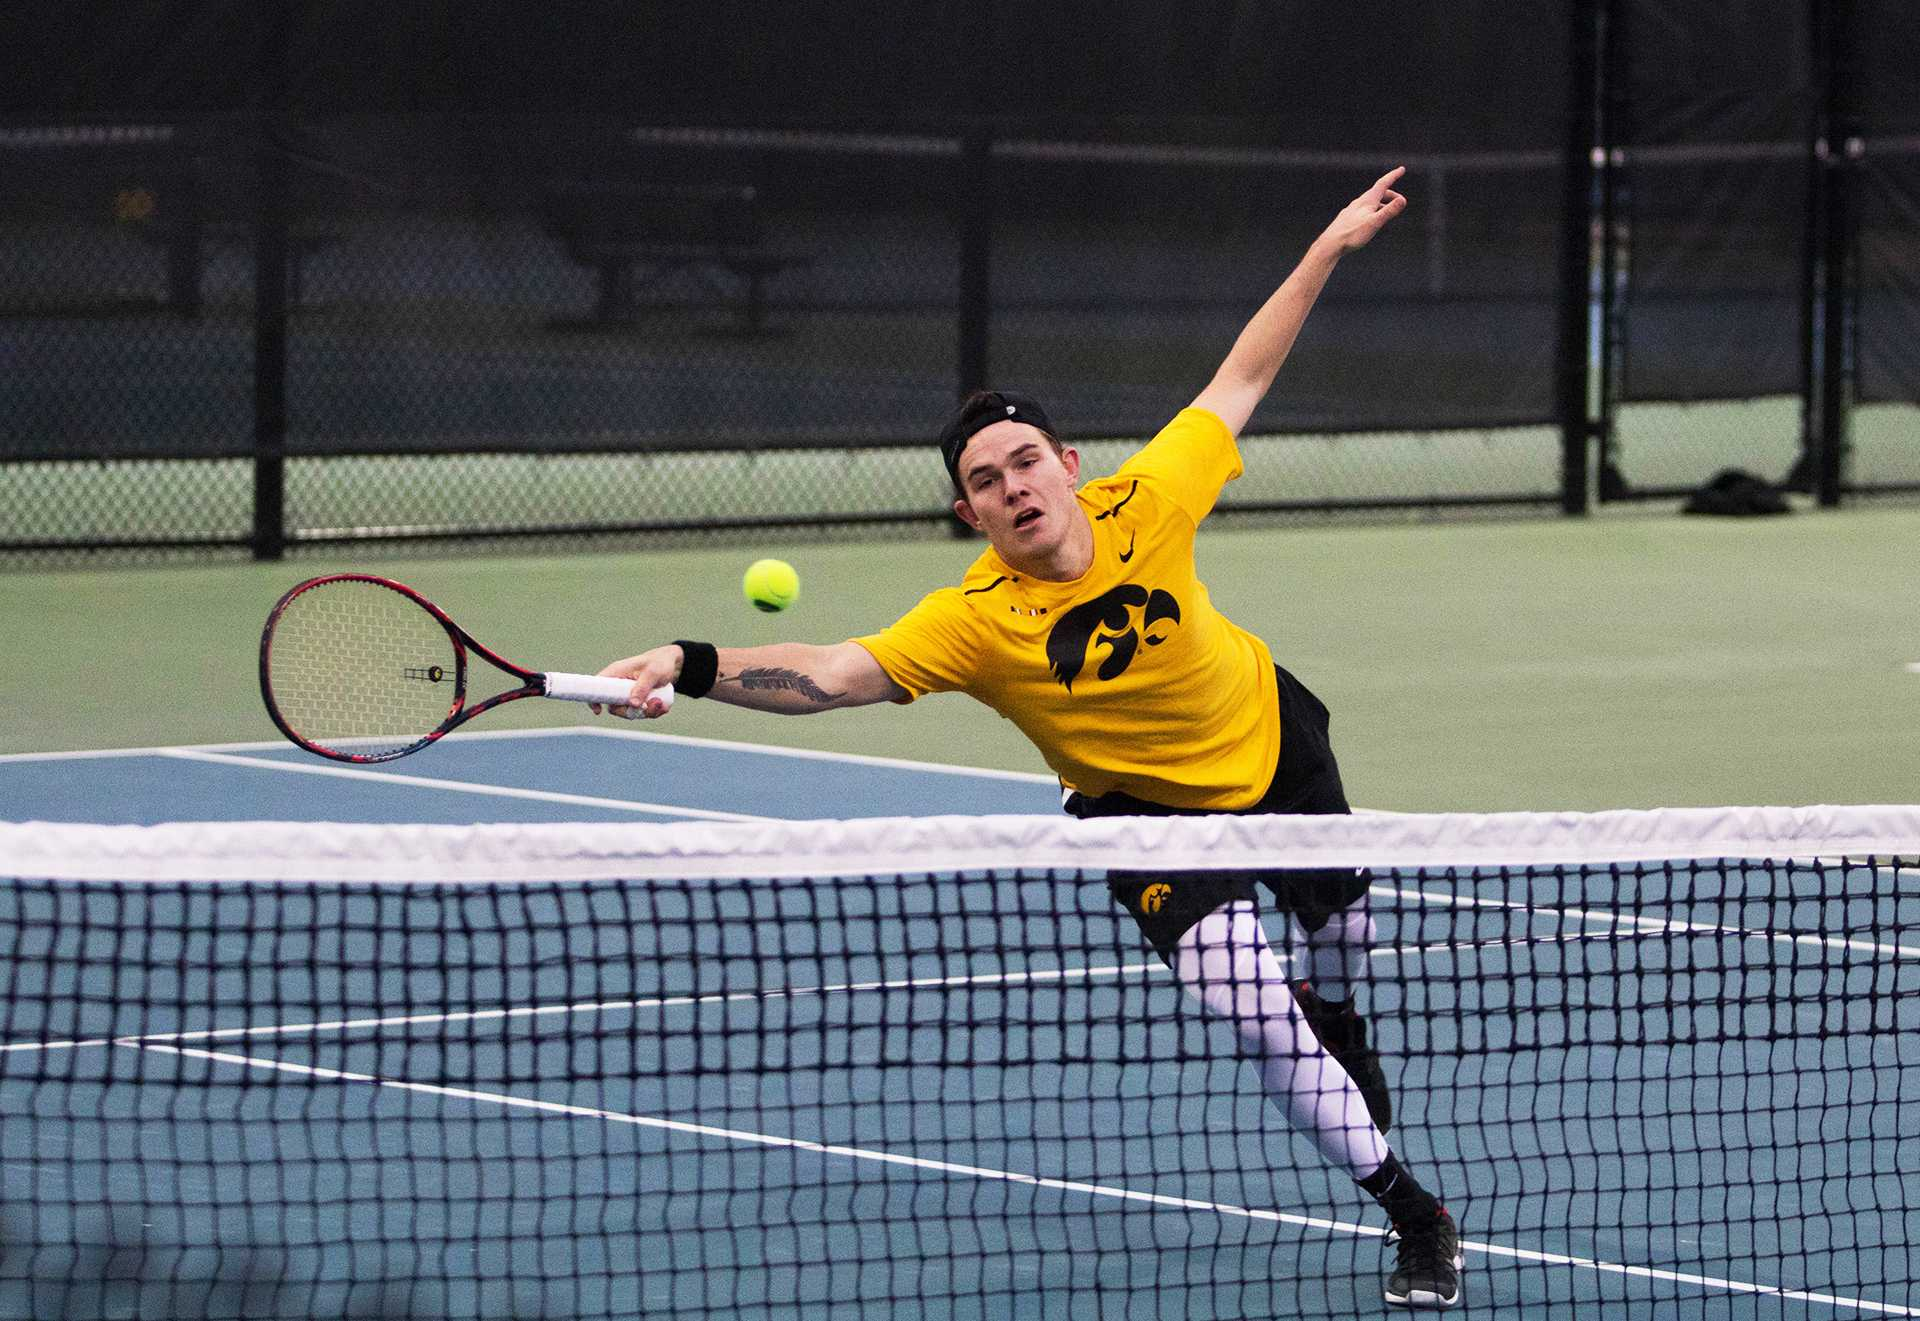 Jonas Larsen reaches for the ball during a match against Indiana at the HTRC on April 13, 2018. The Hawkeyes were defeated 4-3.